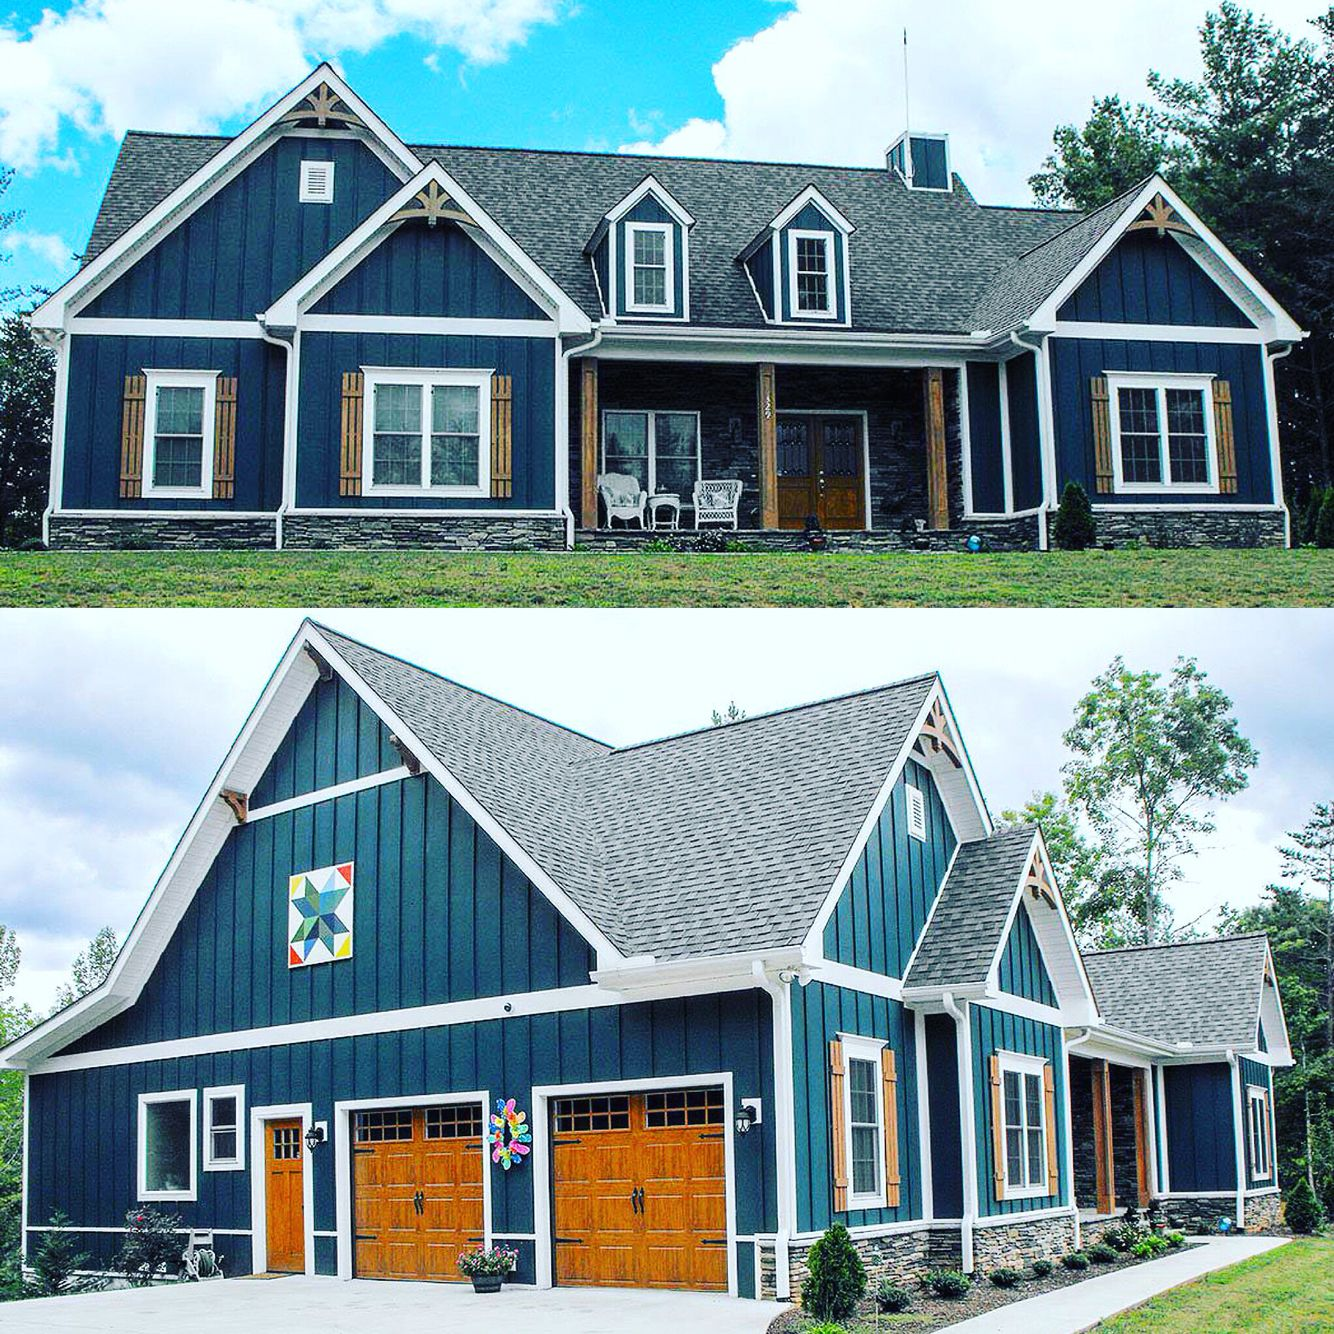 Plan 14632rk Rugged Craftsman With Room Over Garage: Plan 92366MX: Craftsman Escape With Bunk Room